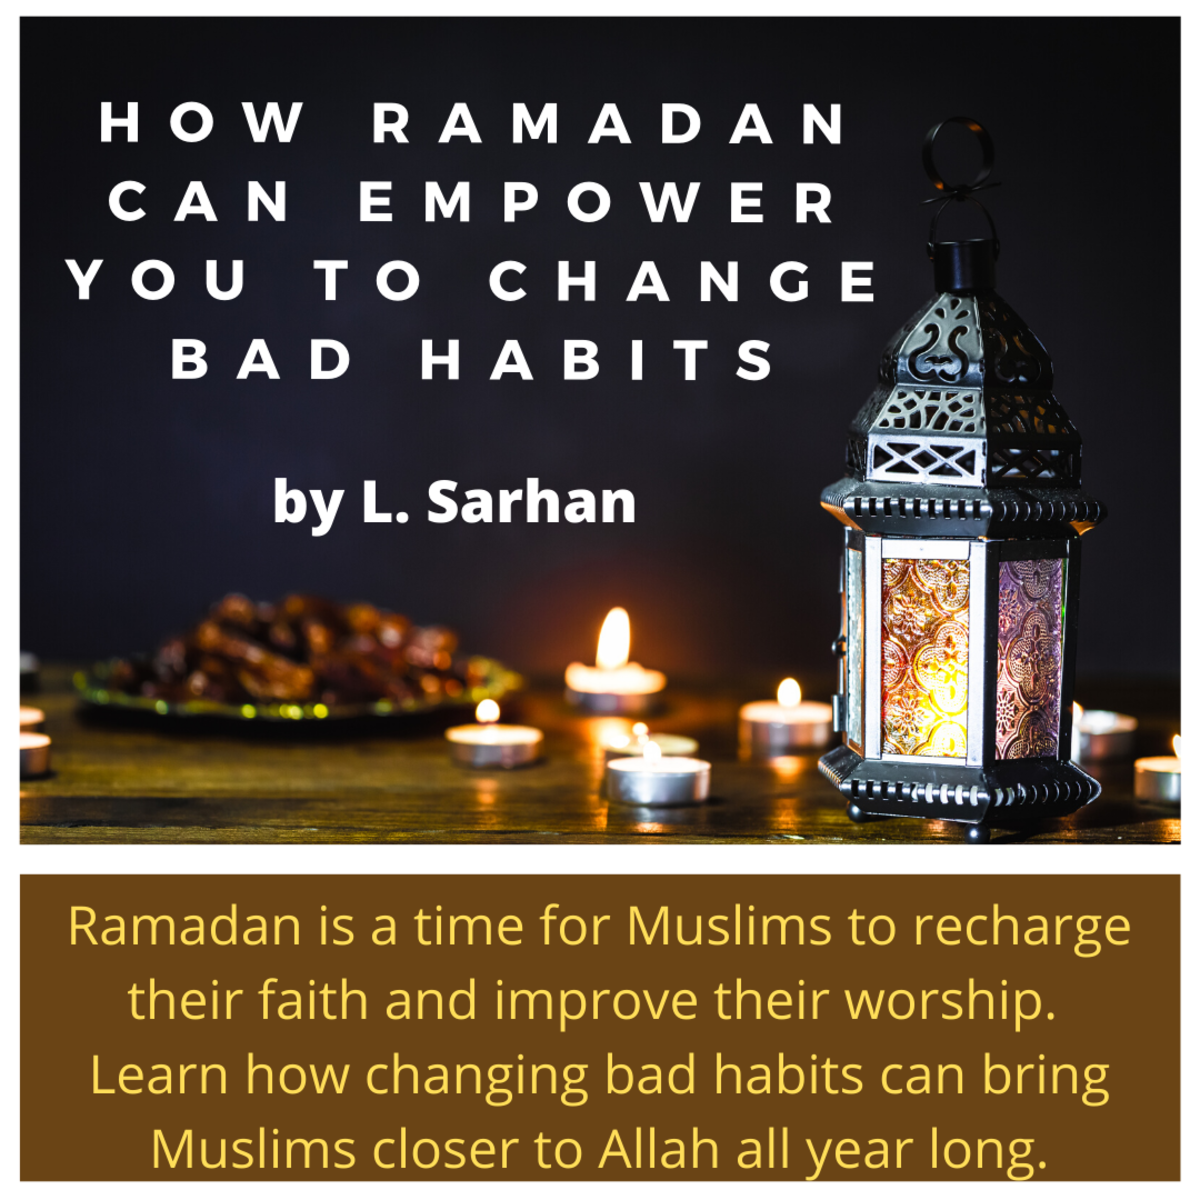 Tips for changing bad habits that will bring Muslims closer to Allah all year long.